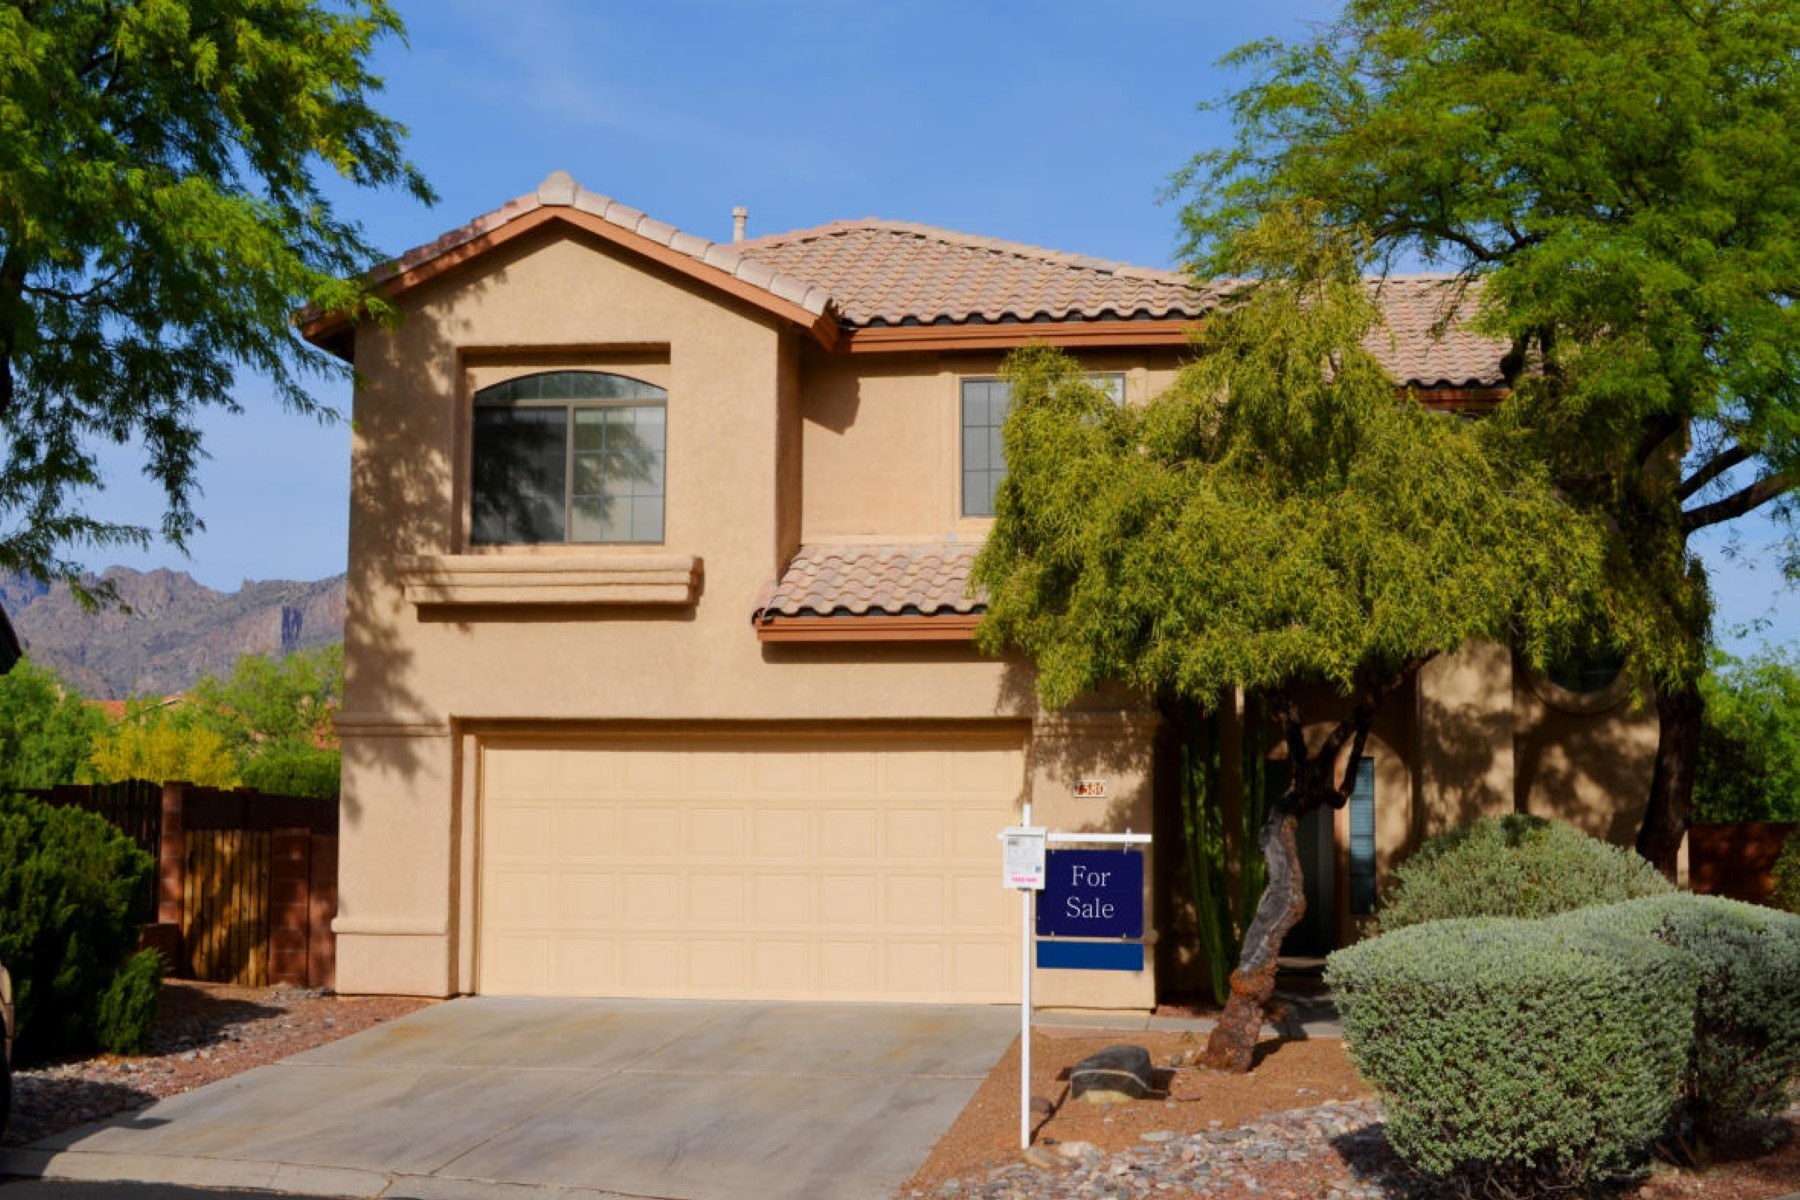 獨棟家庭住宅 為 出售 在 Beautifully appointed home in the desirable Sabino Canyon 7380 E Temeroso Place Tucson, 亞利桑那州, 85750 美國